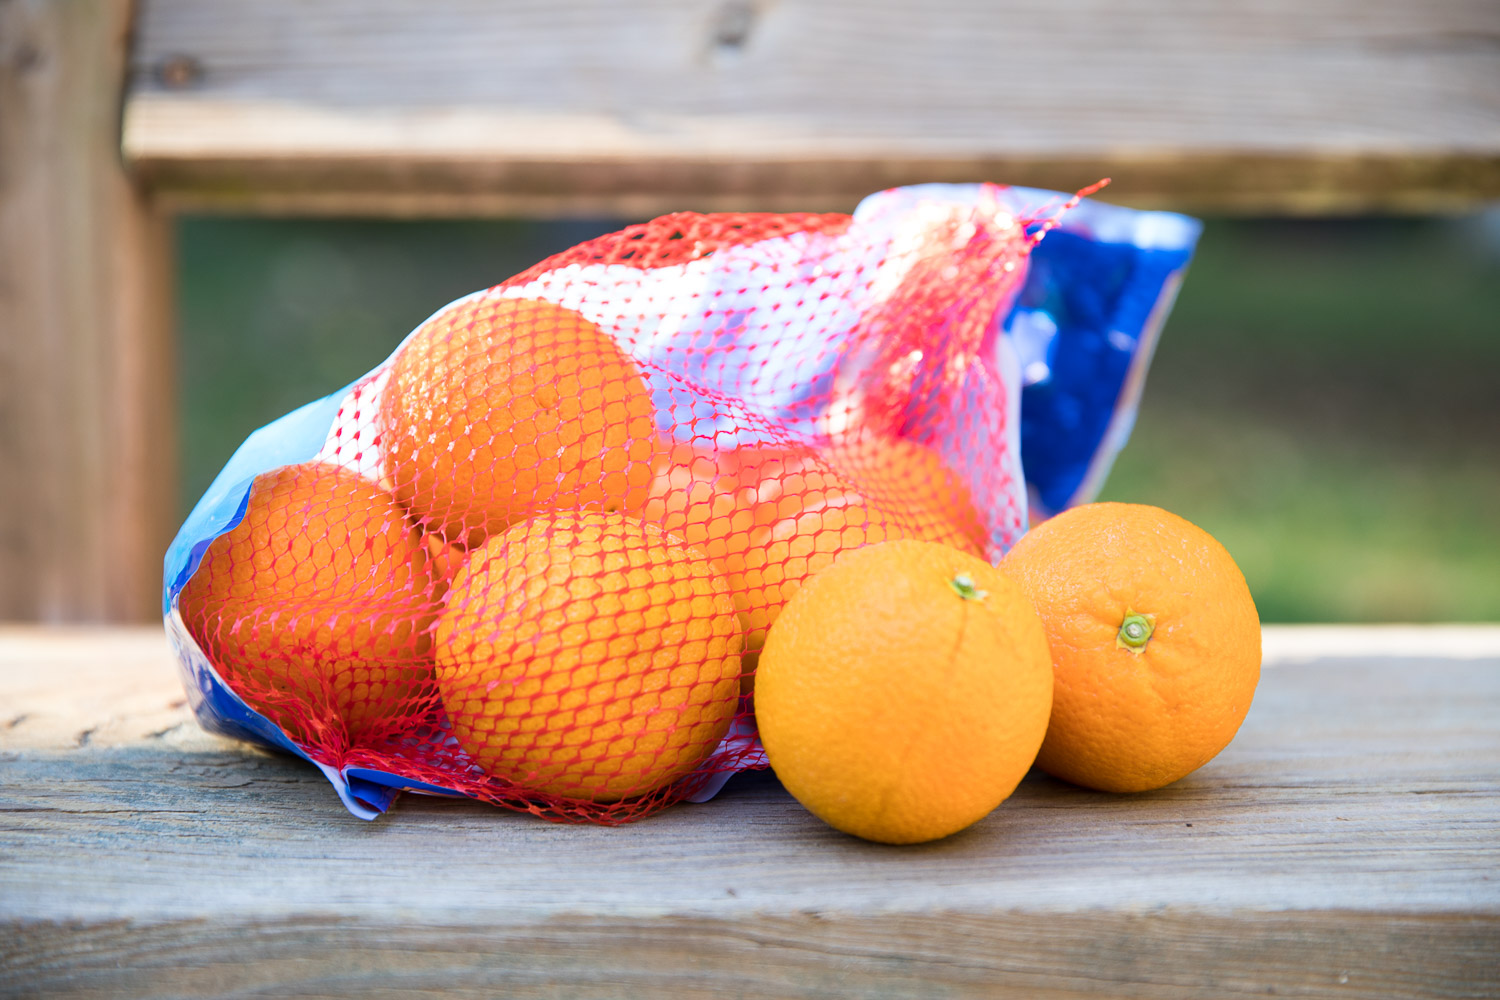 No amount of oranges can save your immune system if you're immunosuppressed.